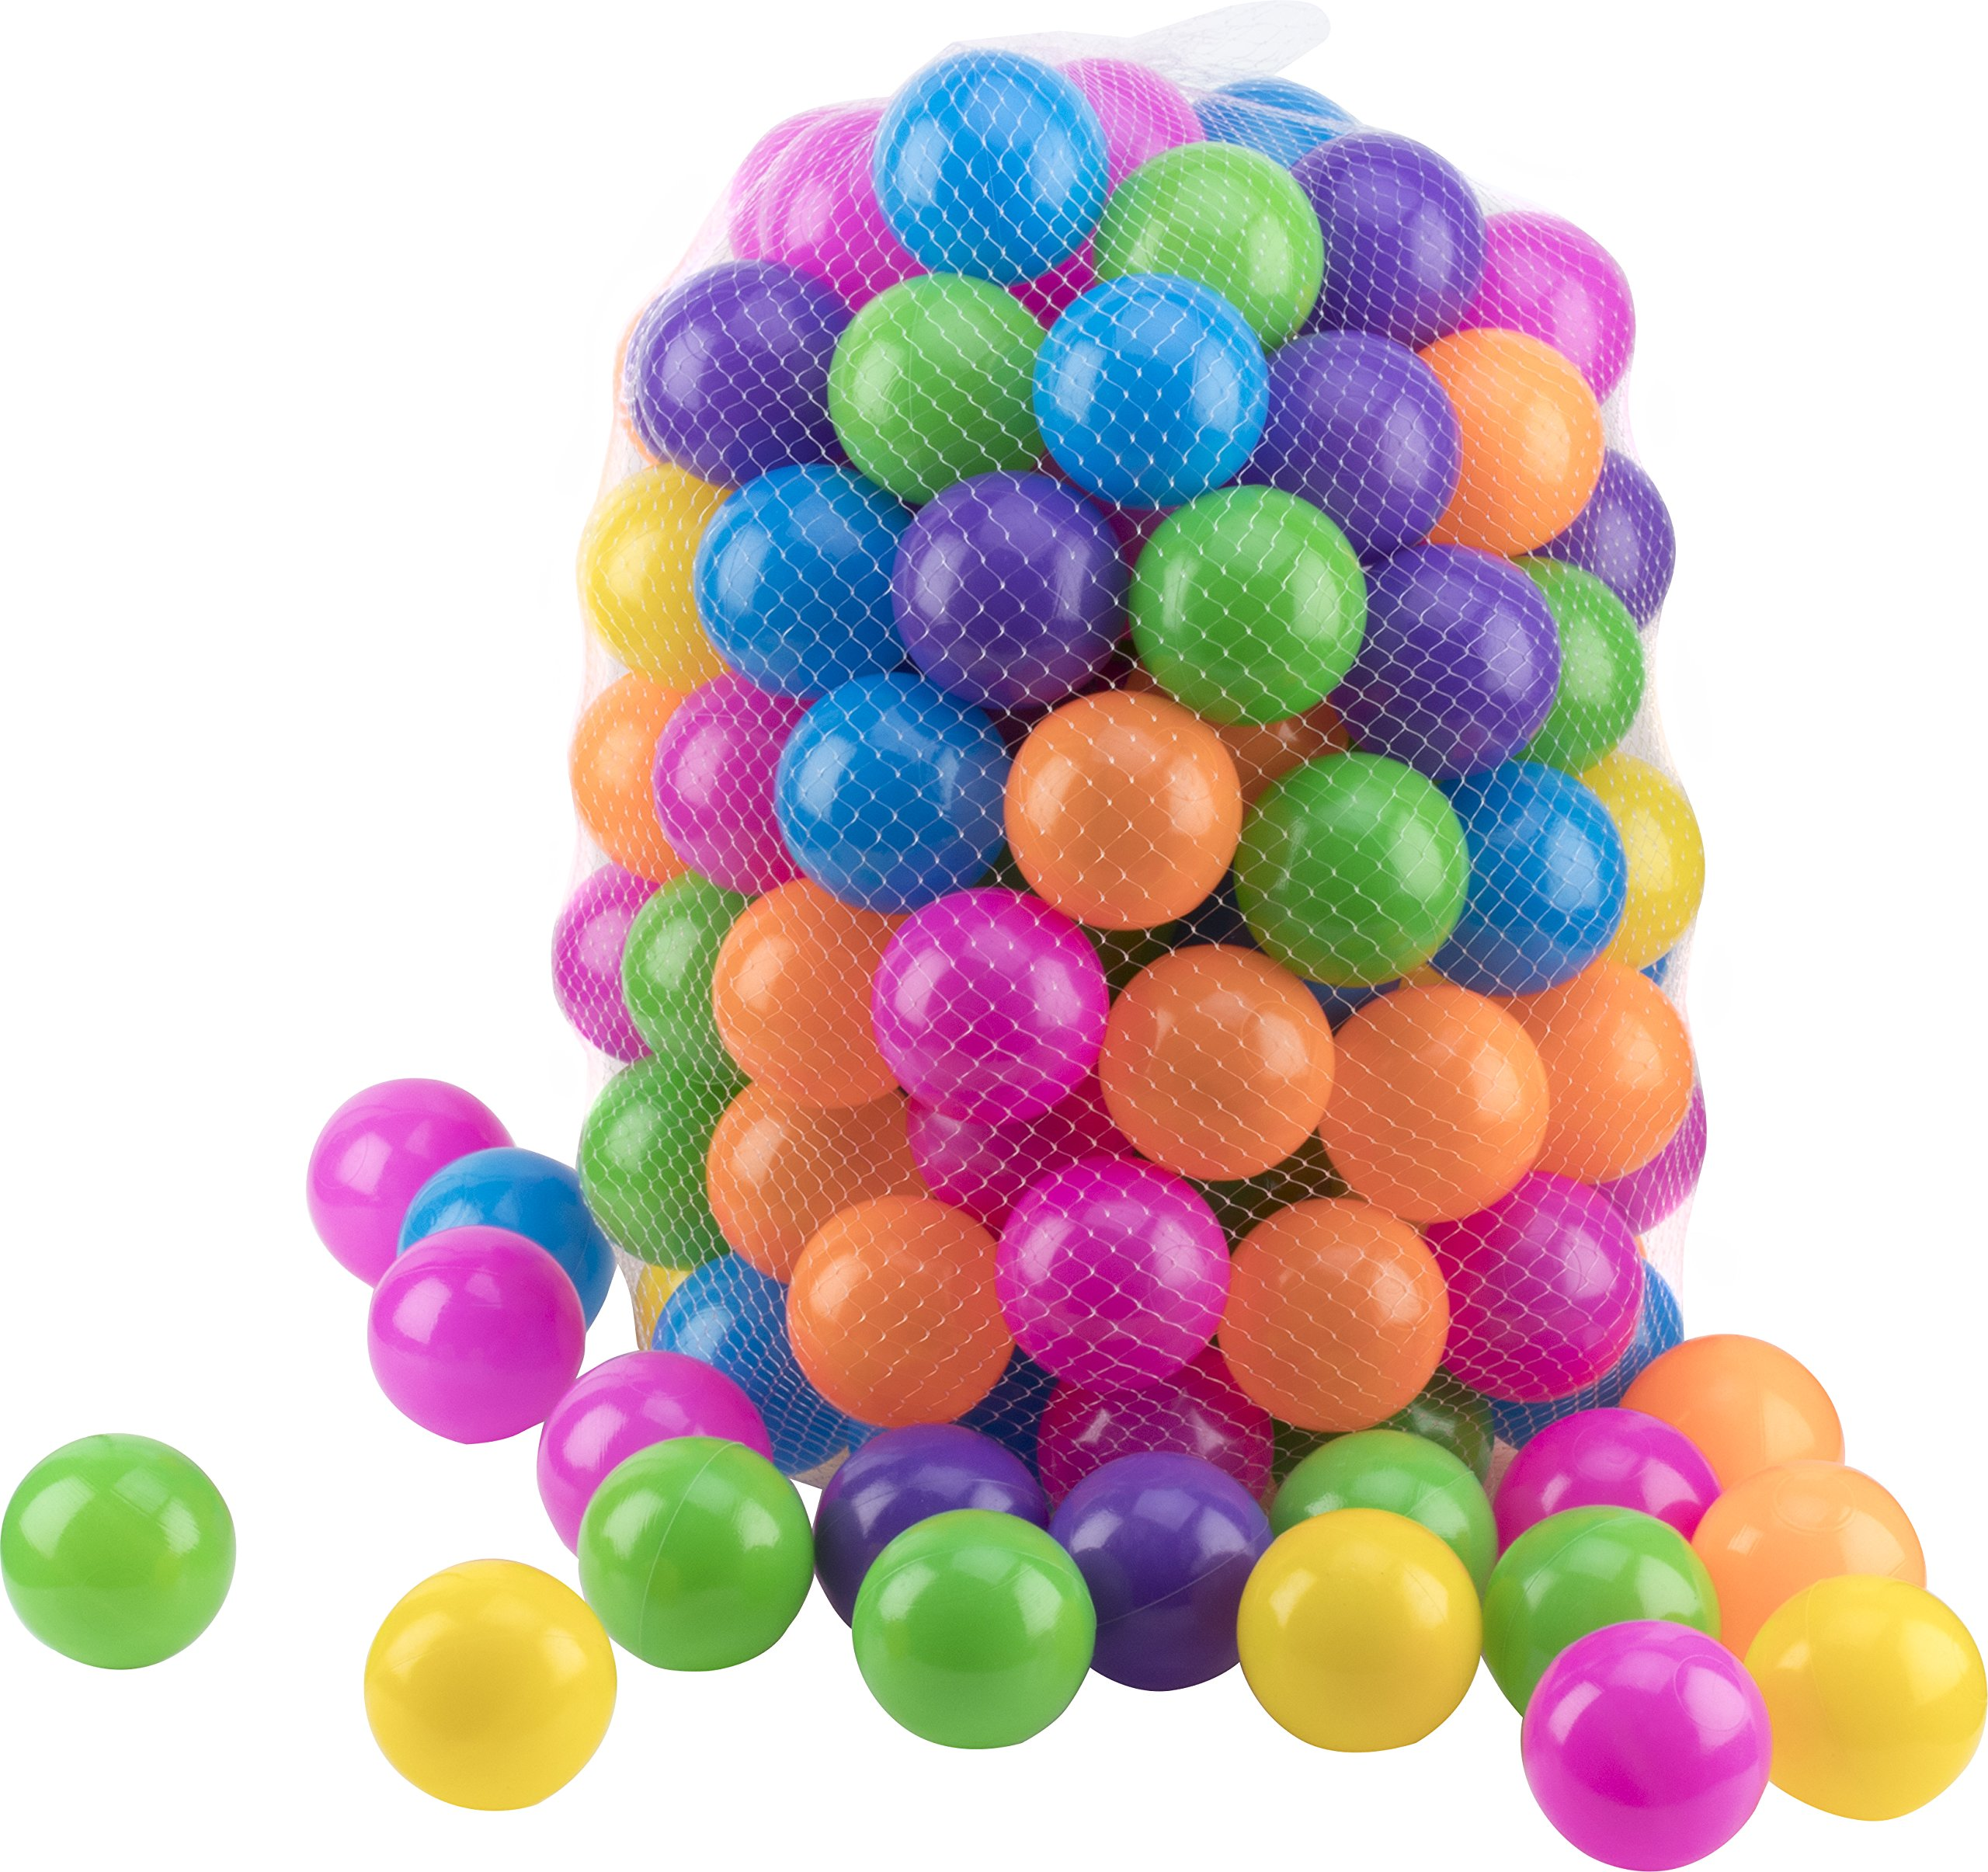 Play22 Ball Pit 200 Pack - Ball Pit Balls Crush Proof BPA Free - Includes Reusable Zipper Mesh Bag - Colorful Fun Plastic Balls - Ball Pit for Kids and Baby - Ball Pit for Any Ball Pool - Original by Play22 (Image #6)